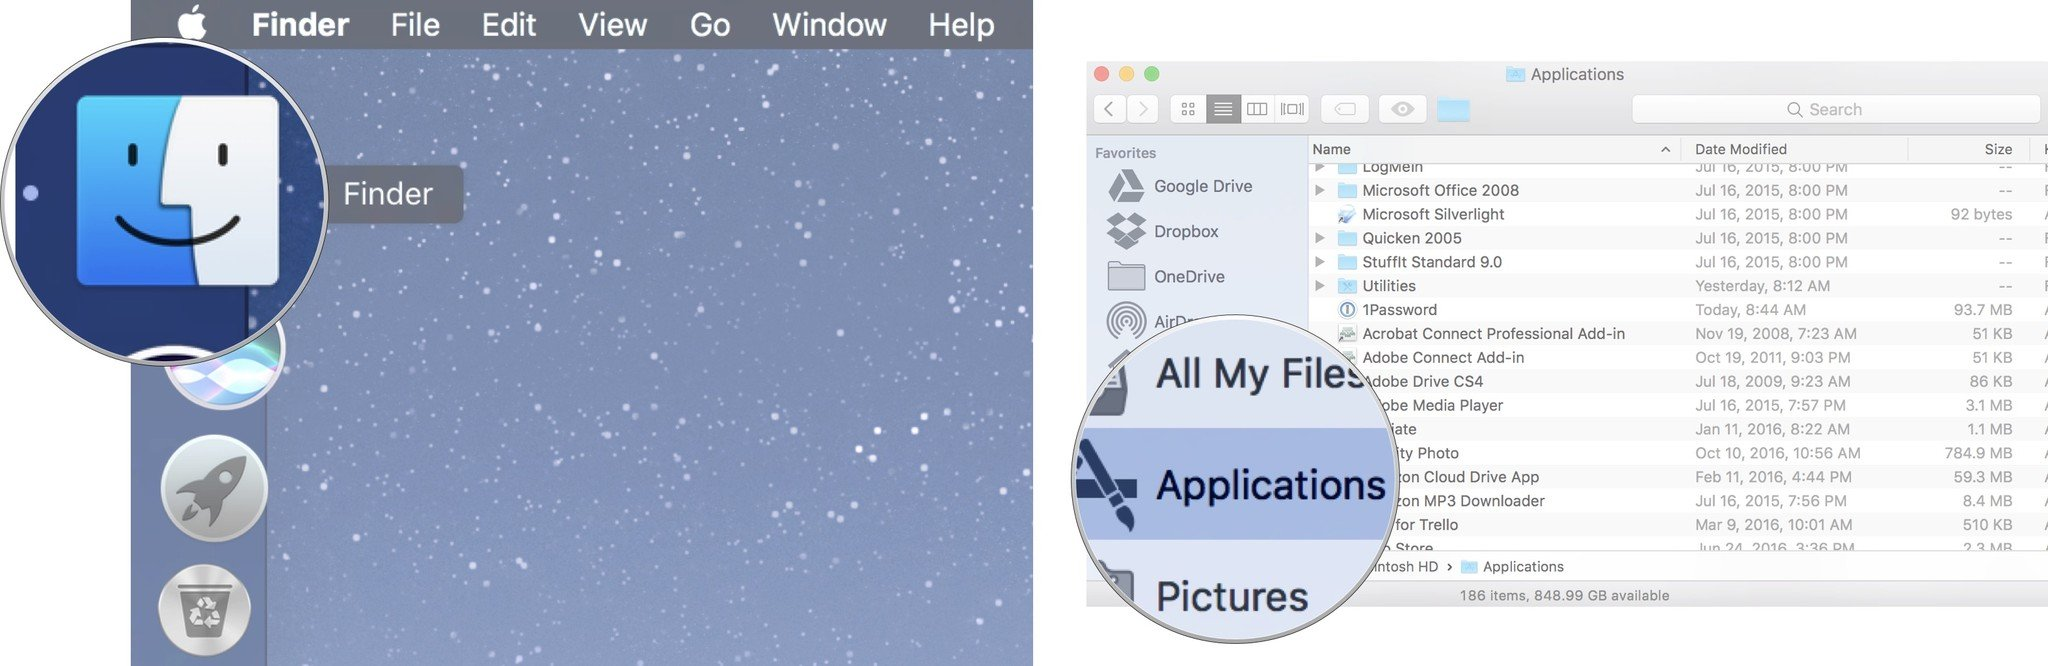 applications folder gone from finder